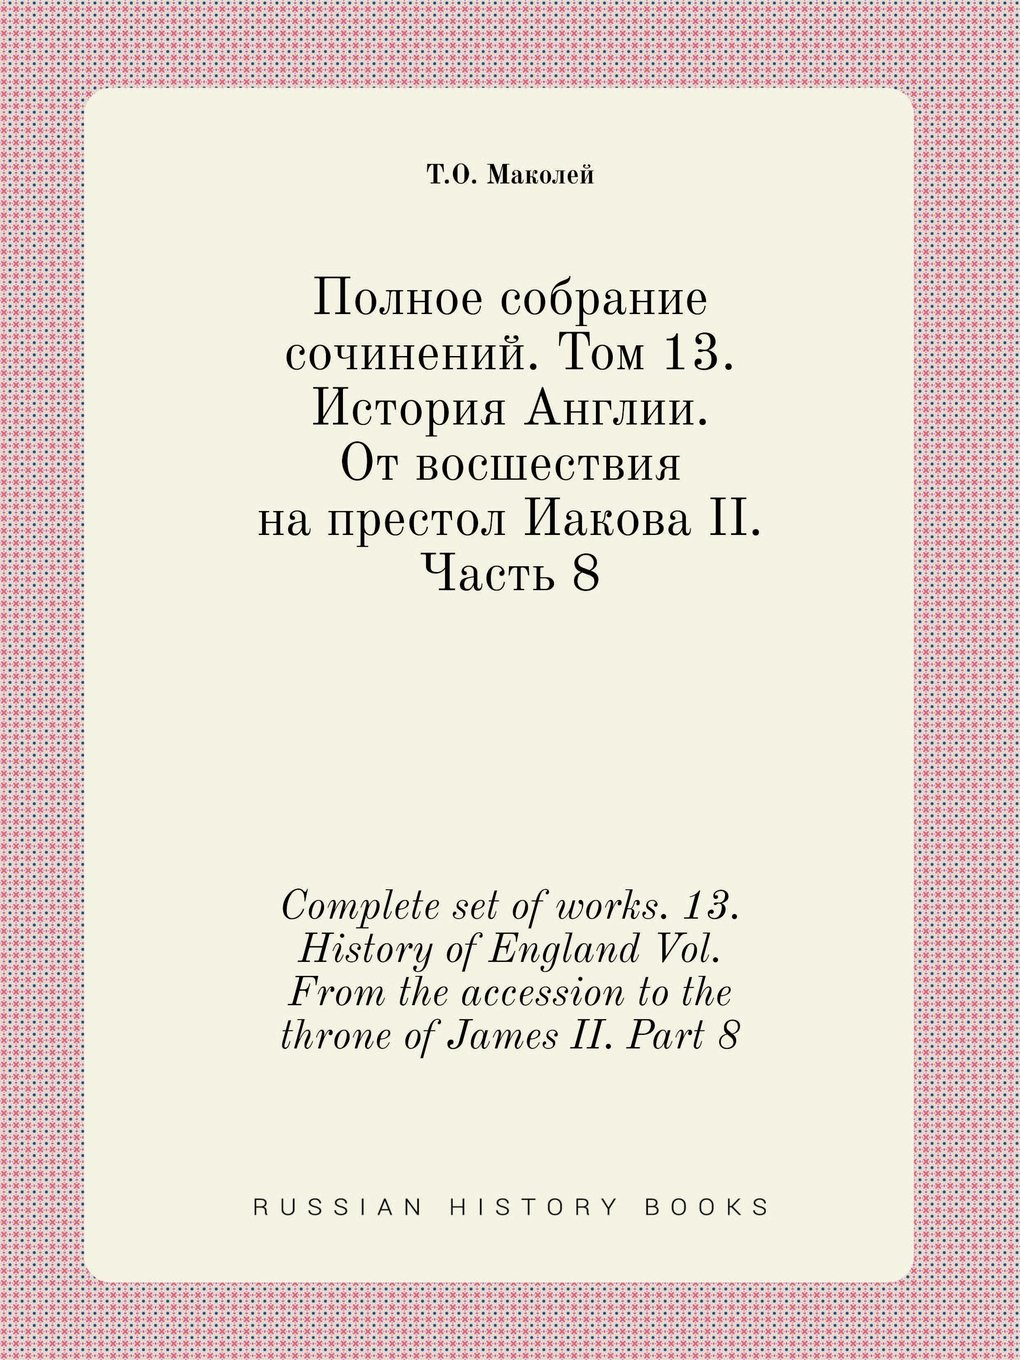 Complete set of works. 13. History of England Vol. From the accession to the throne of James II. Part 8 (Russian Edition) PDF